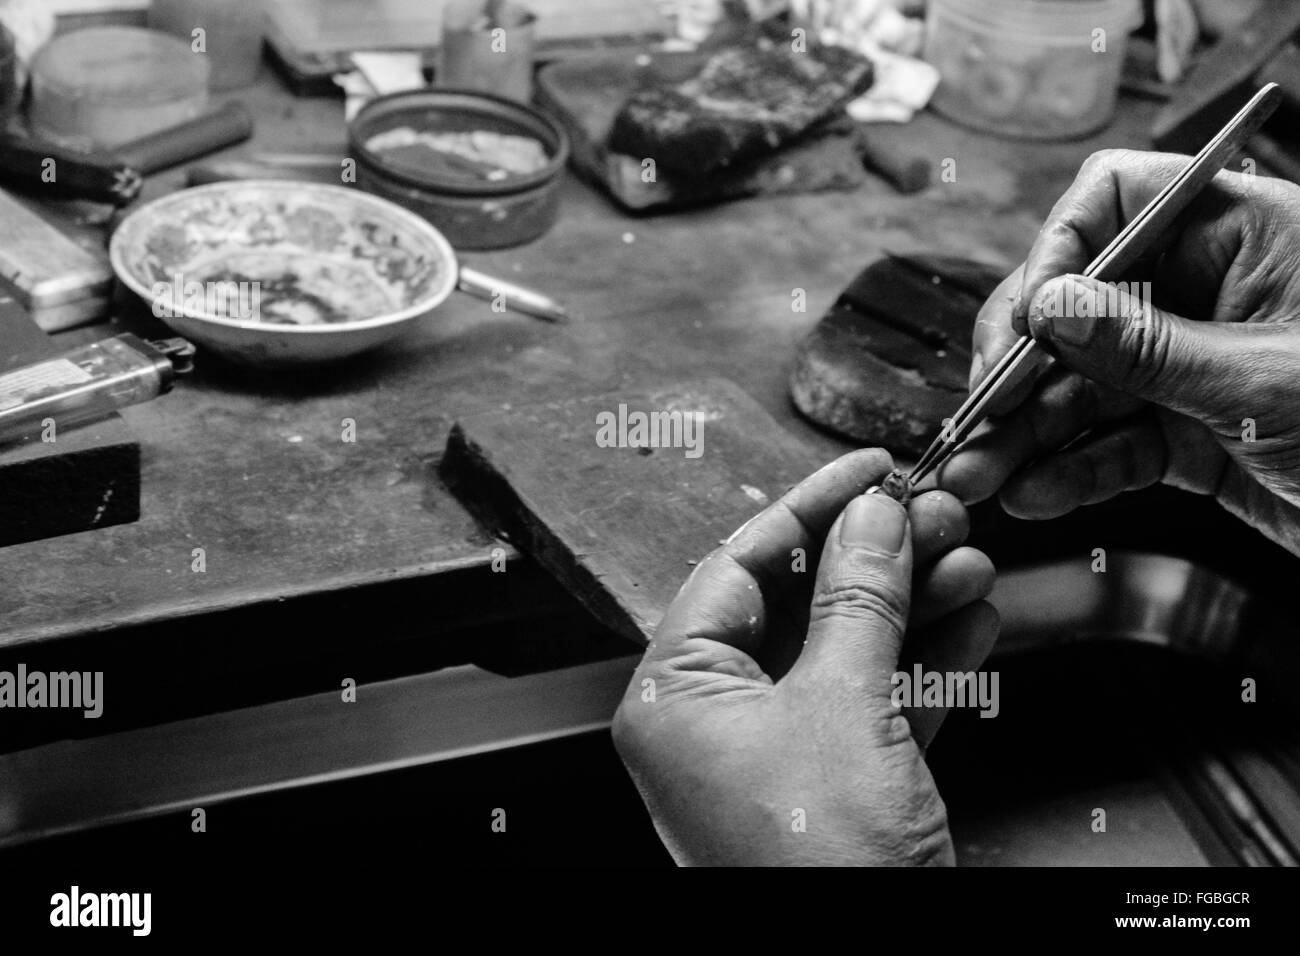 Cropped Image Of Jeweller Working In Workshop - Stock Image